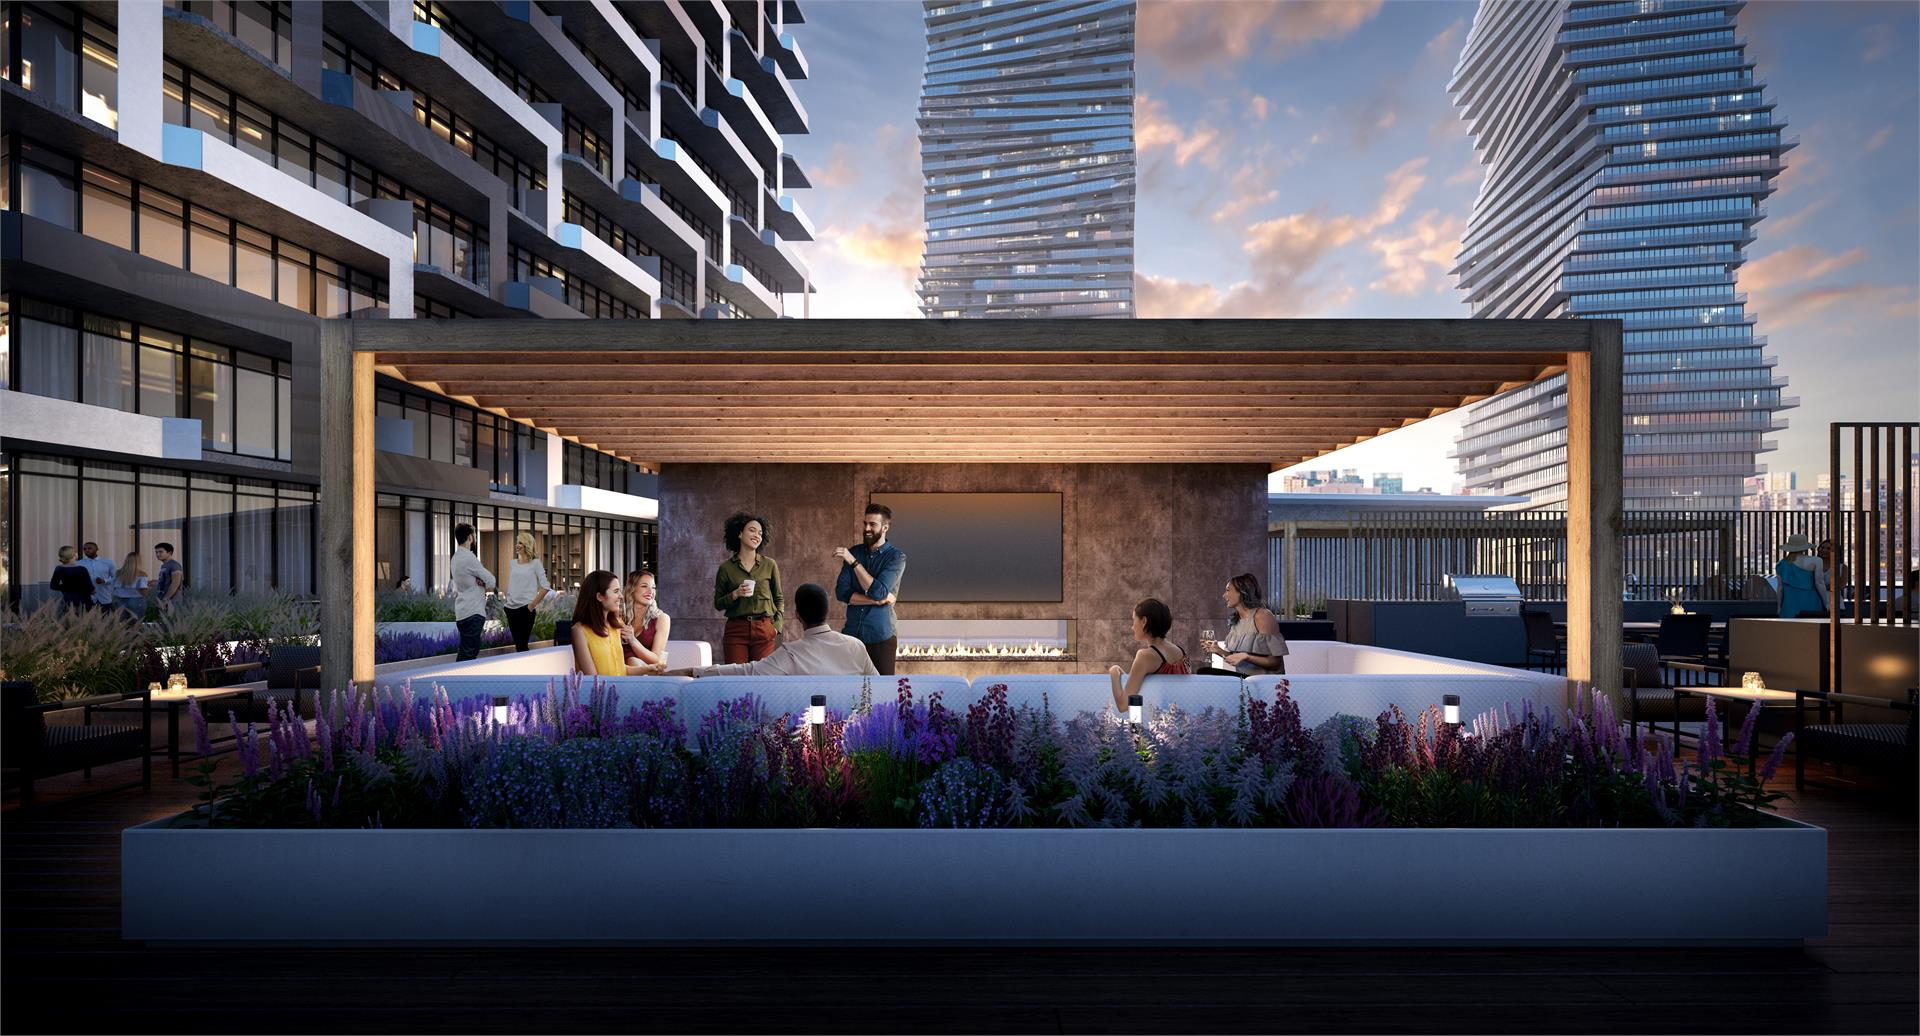 M city 3 Outdoor Fireplace Lounge